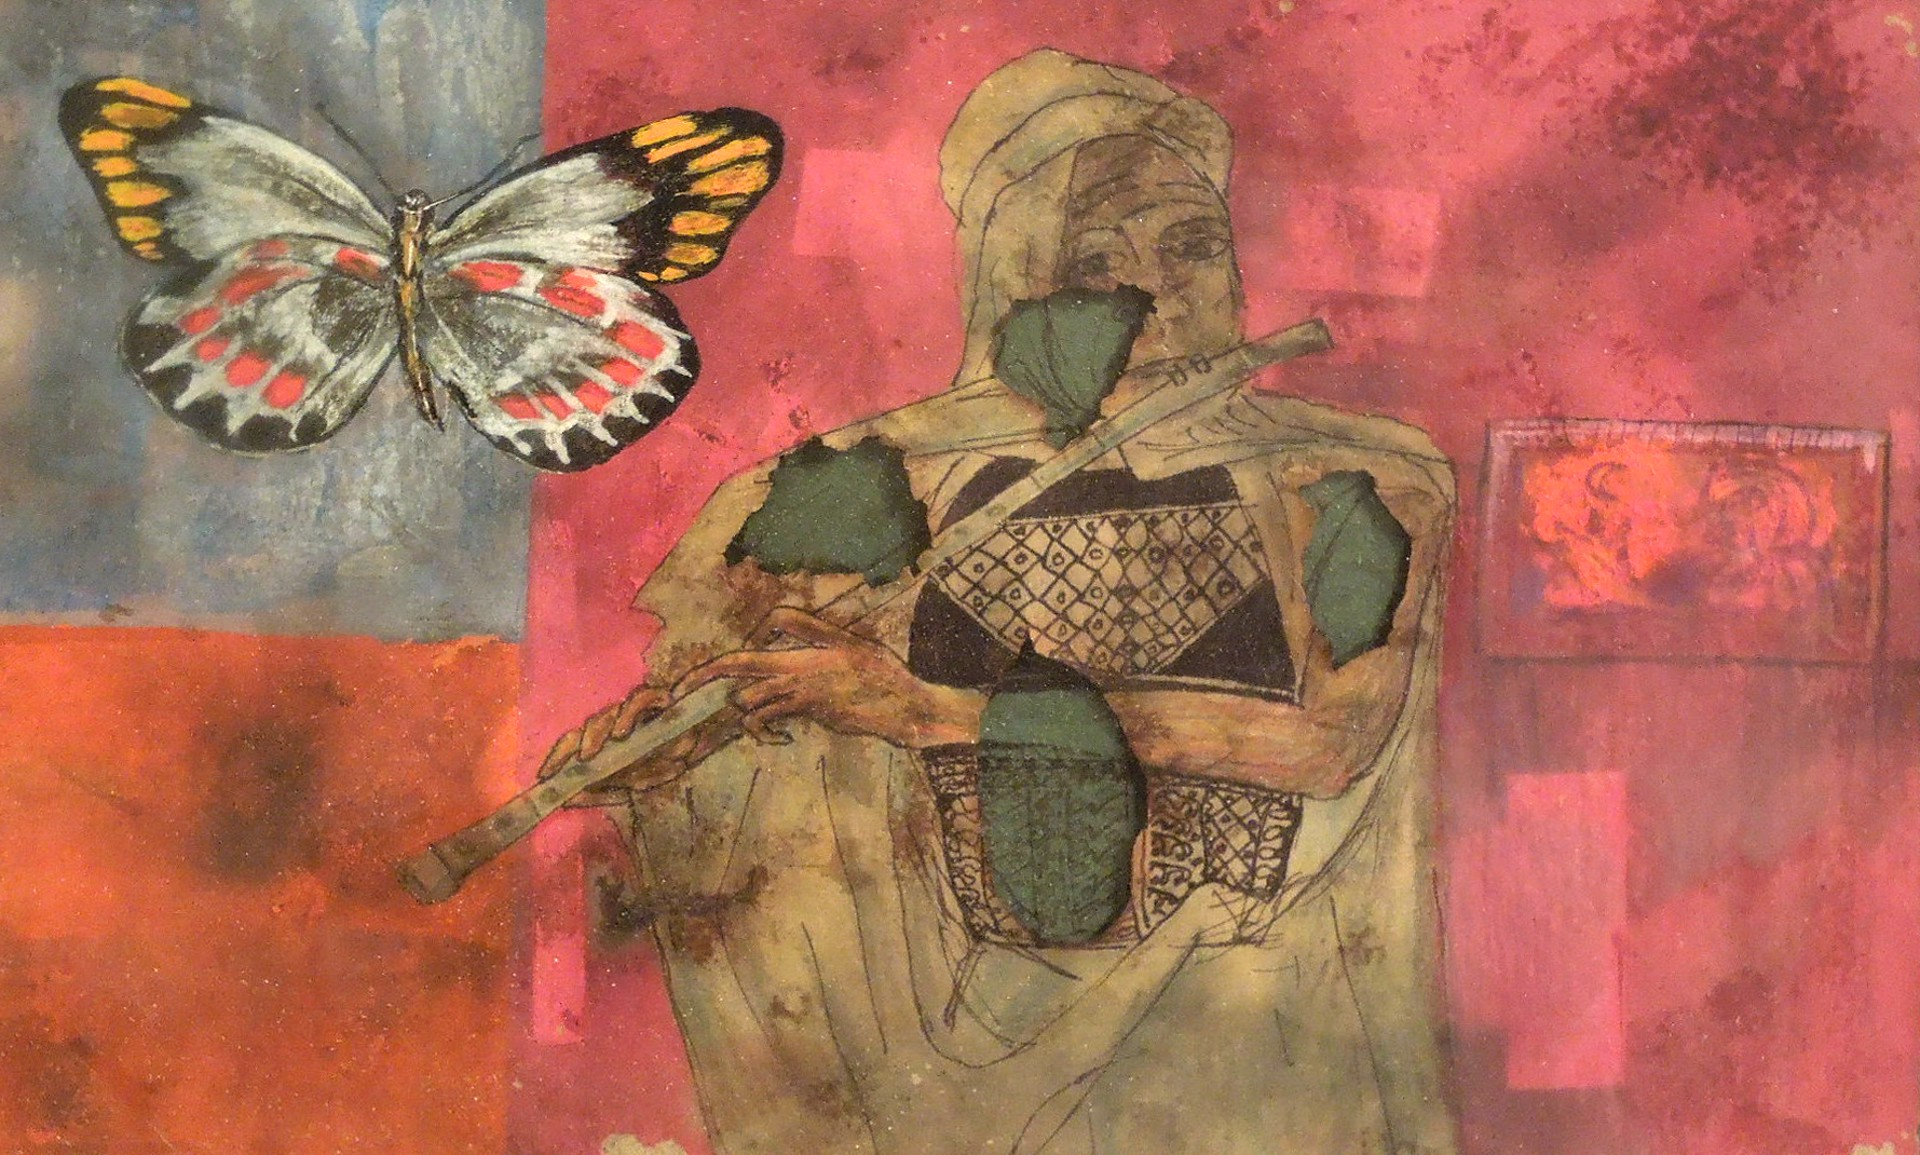 The Butterfly Charmer by Bill Reily